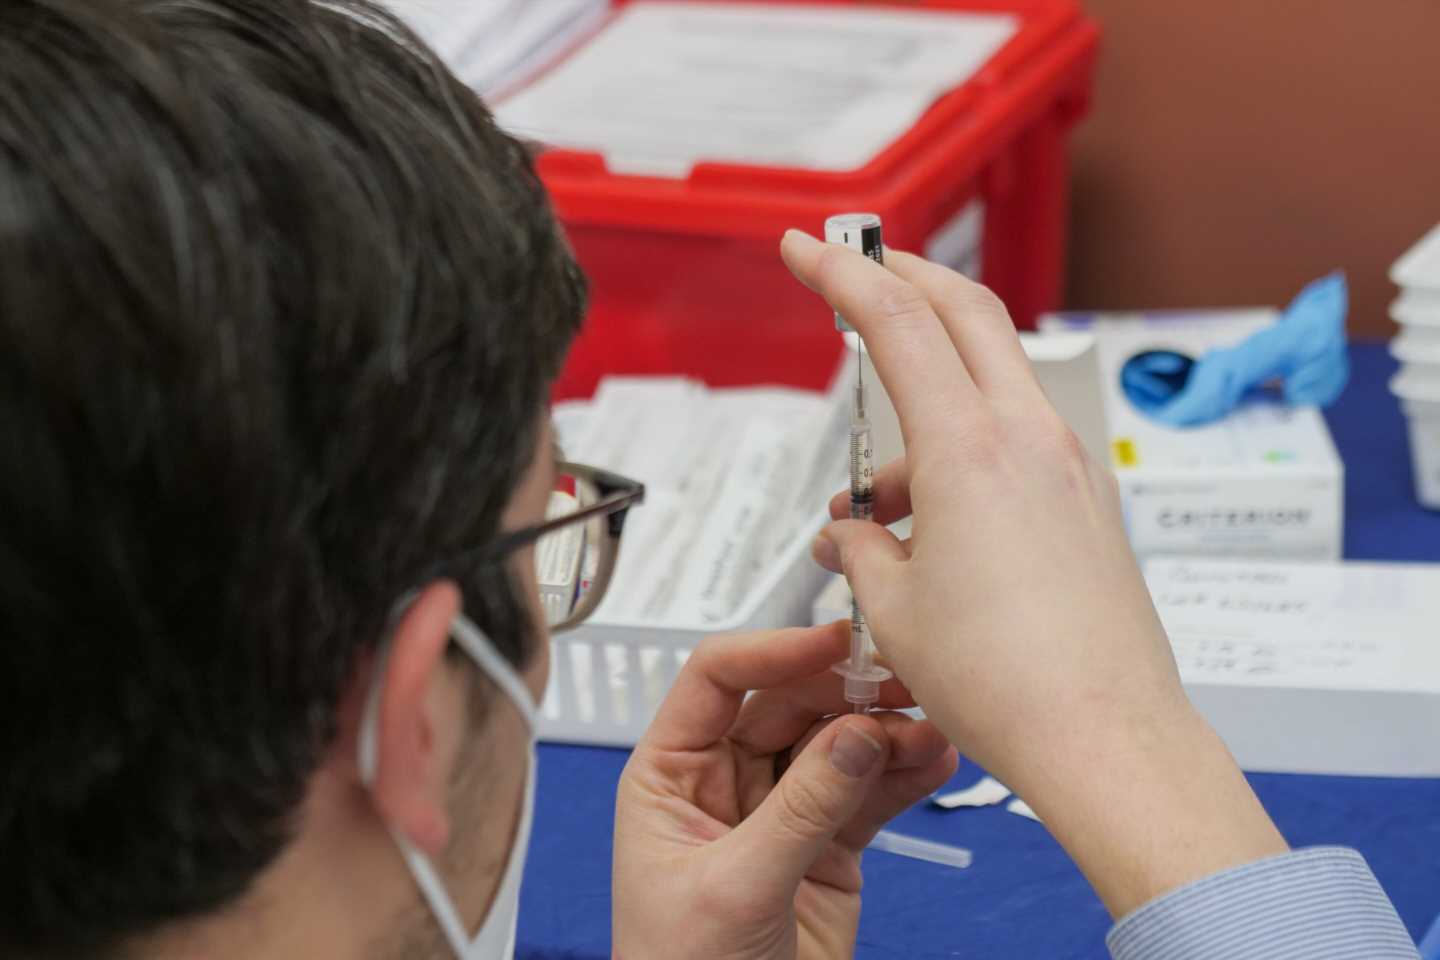 What is COVAX-19, the most advanced of Australias remaining local COVID vaccine candidates?